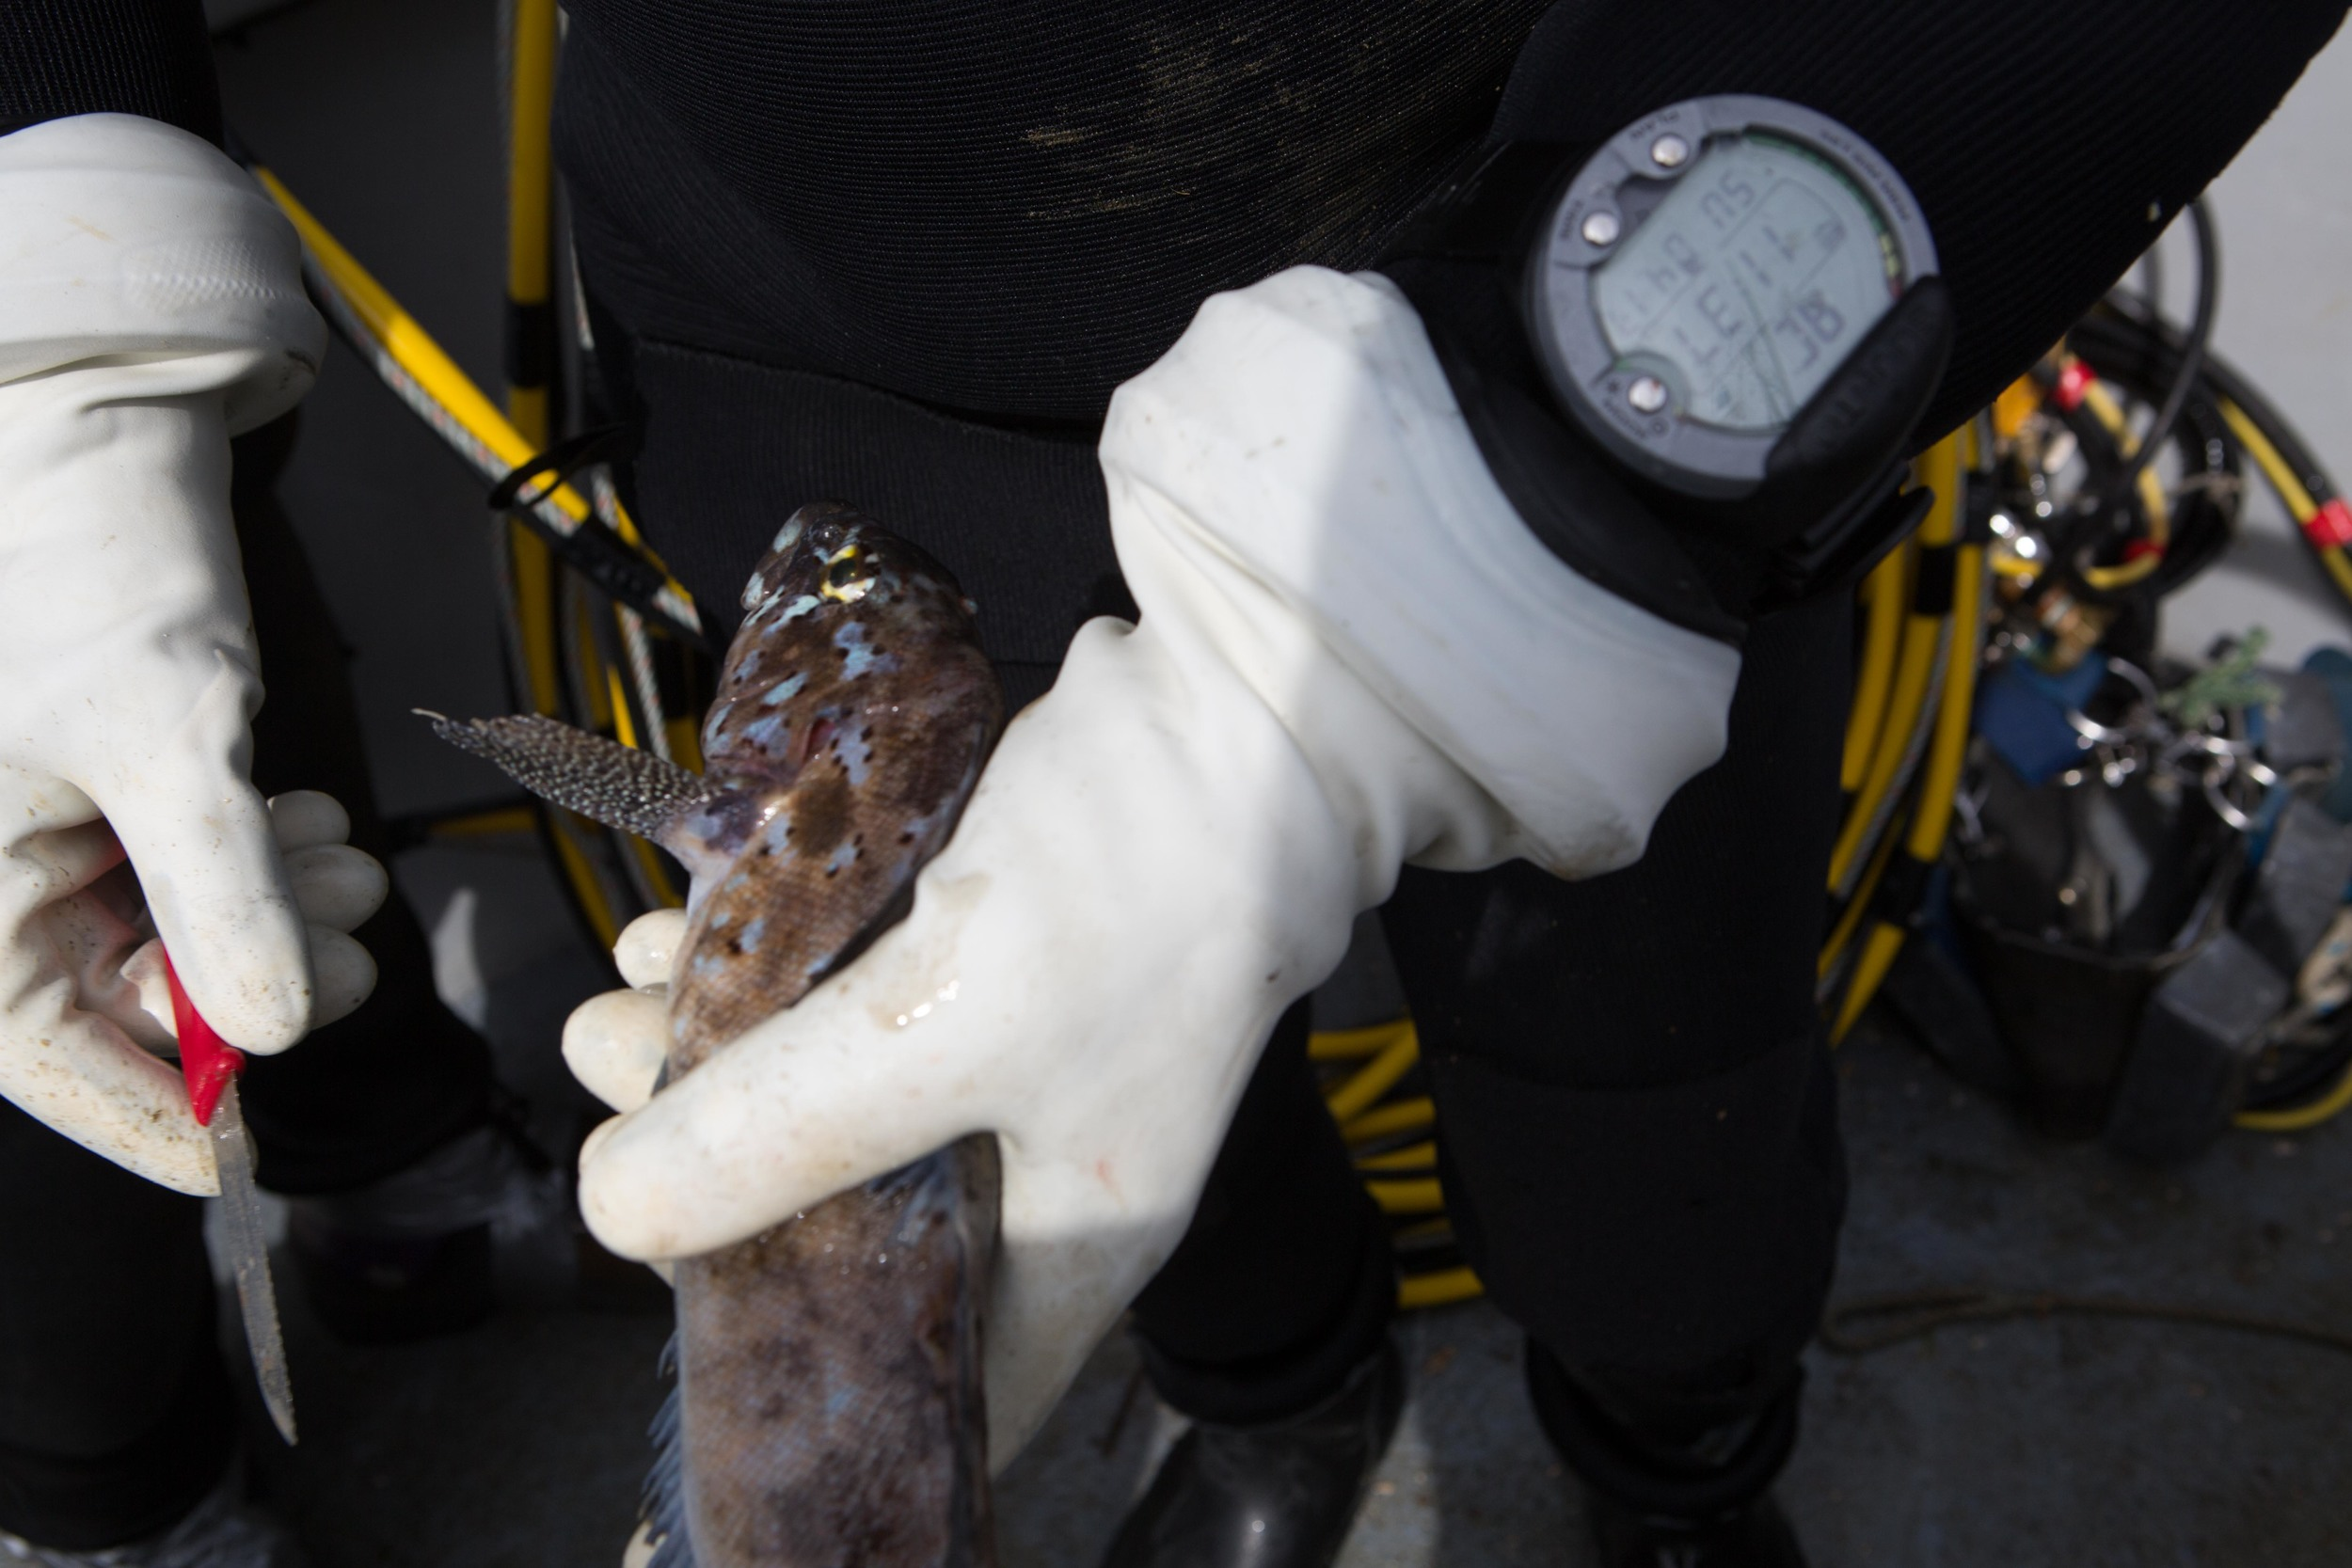 Freeing an entangled kelp greenling